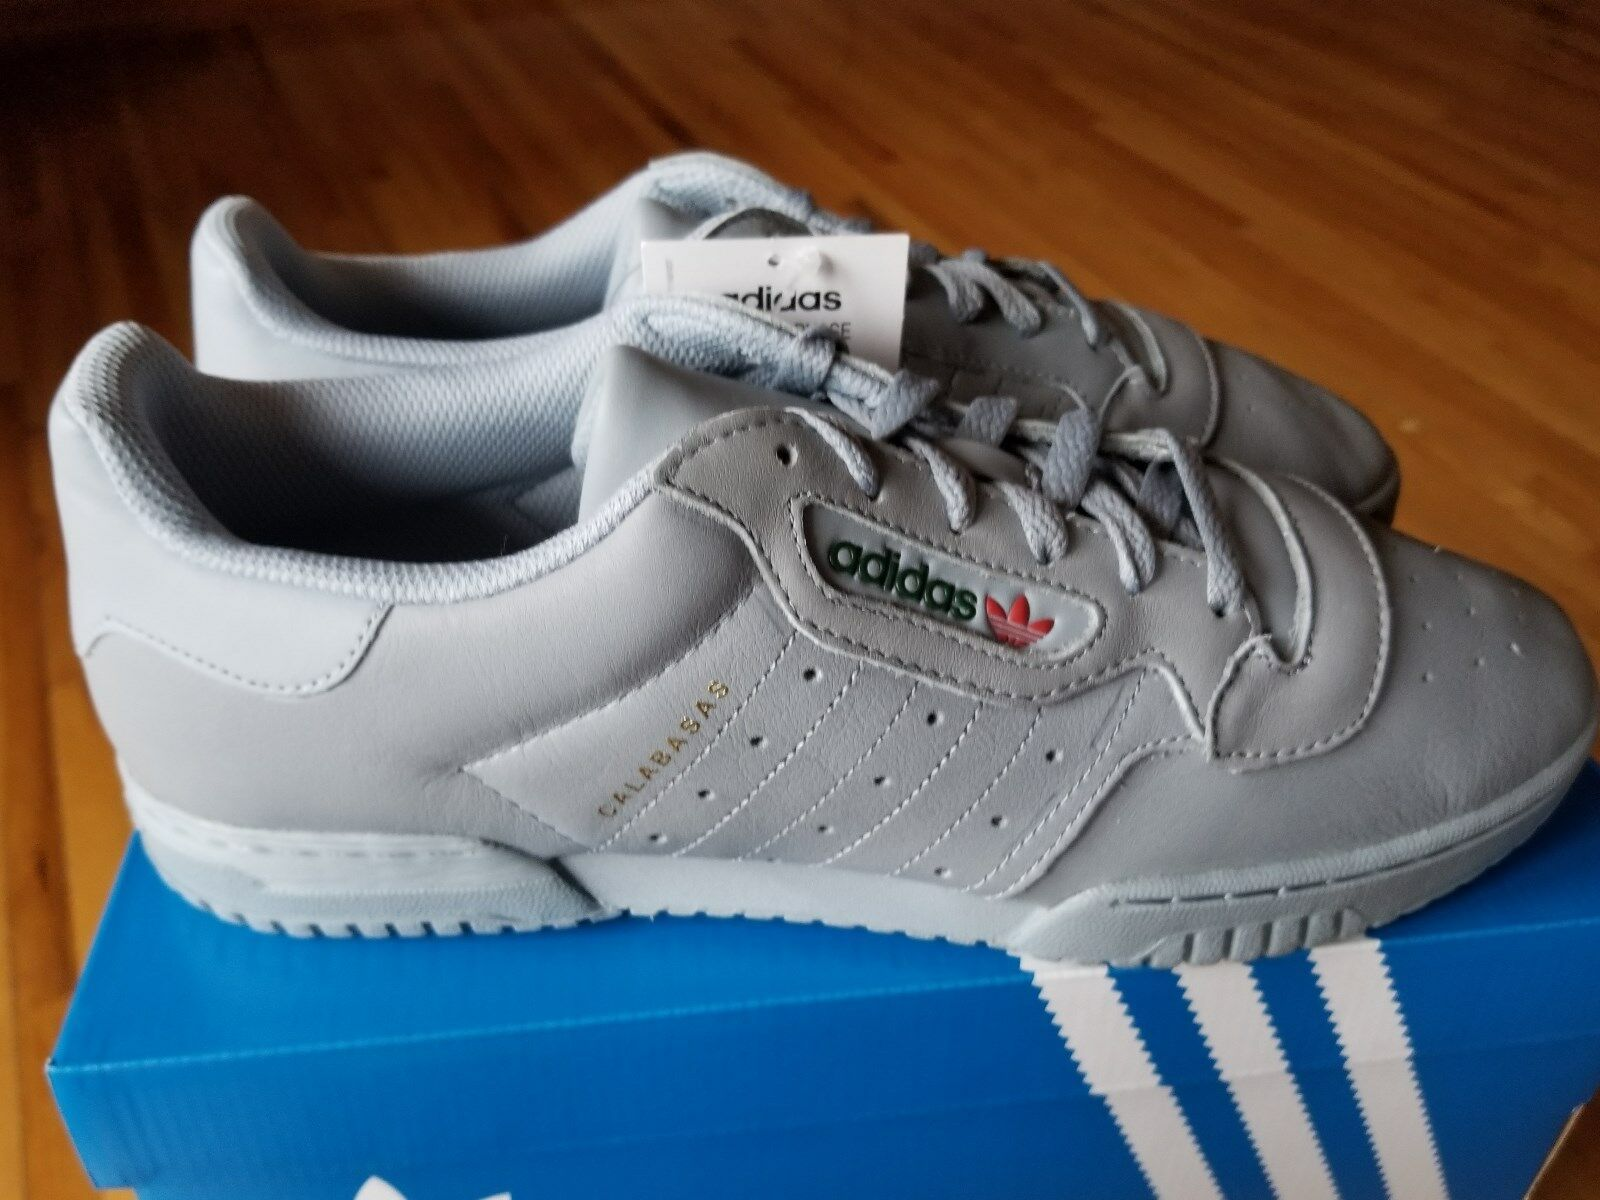 Adidas Yeezy Powerphase Calabasas Grau CG6422 Neu in Box